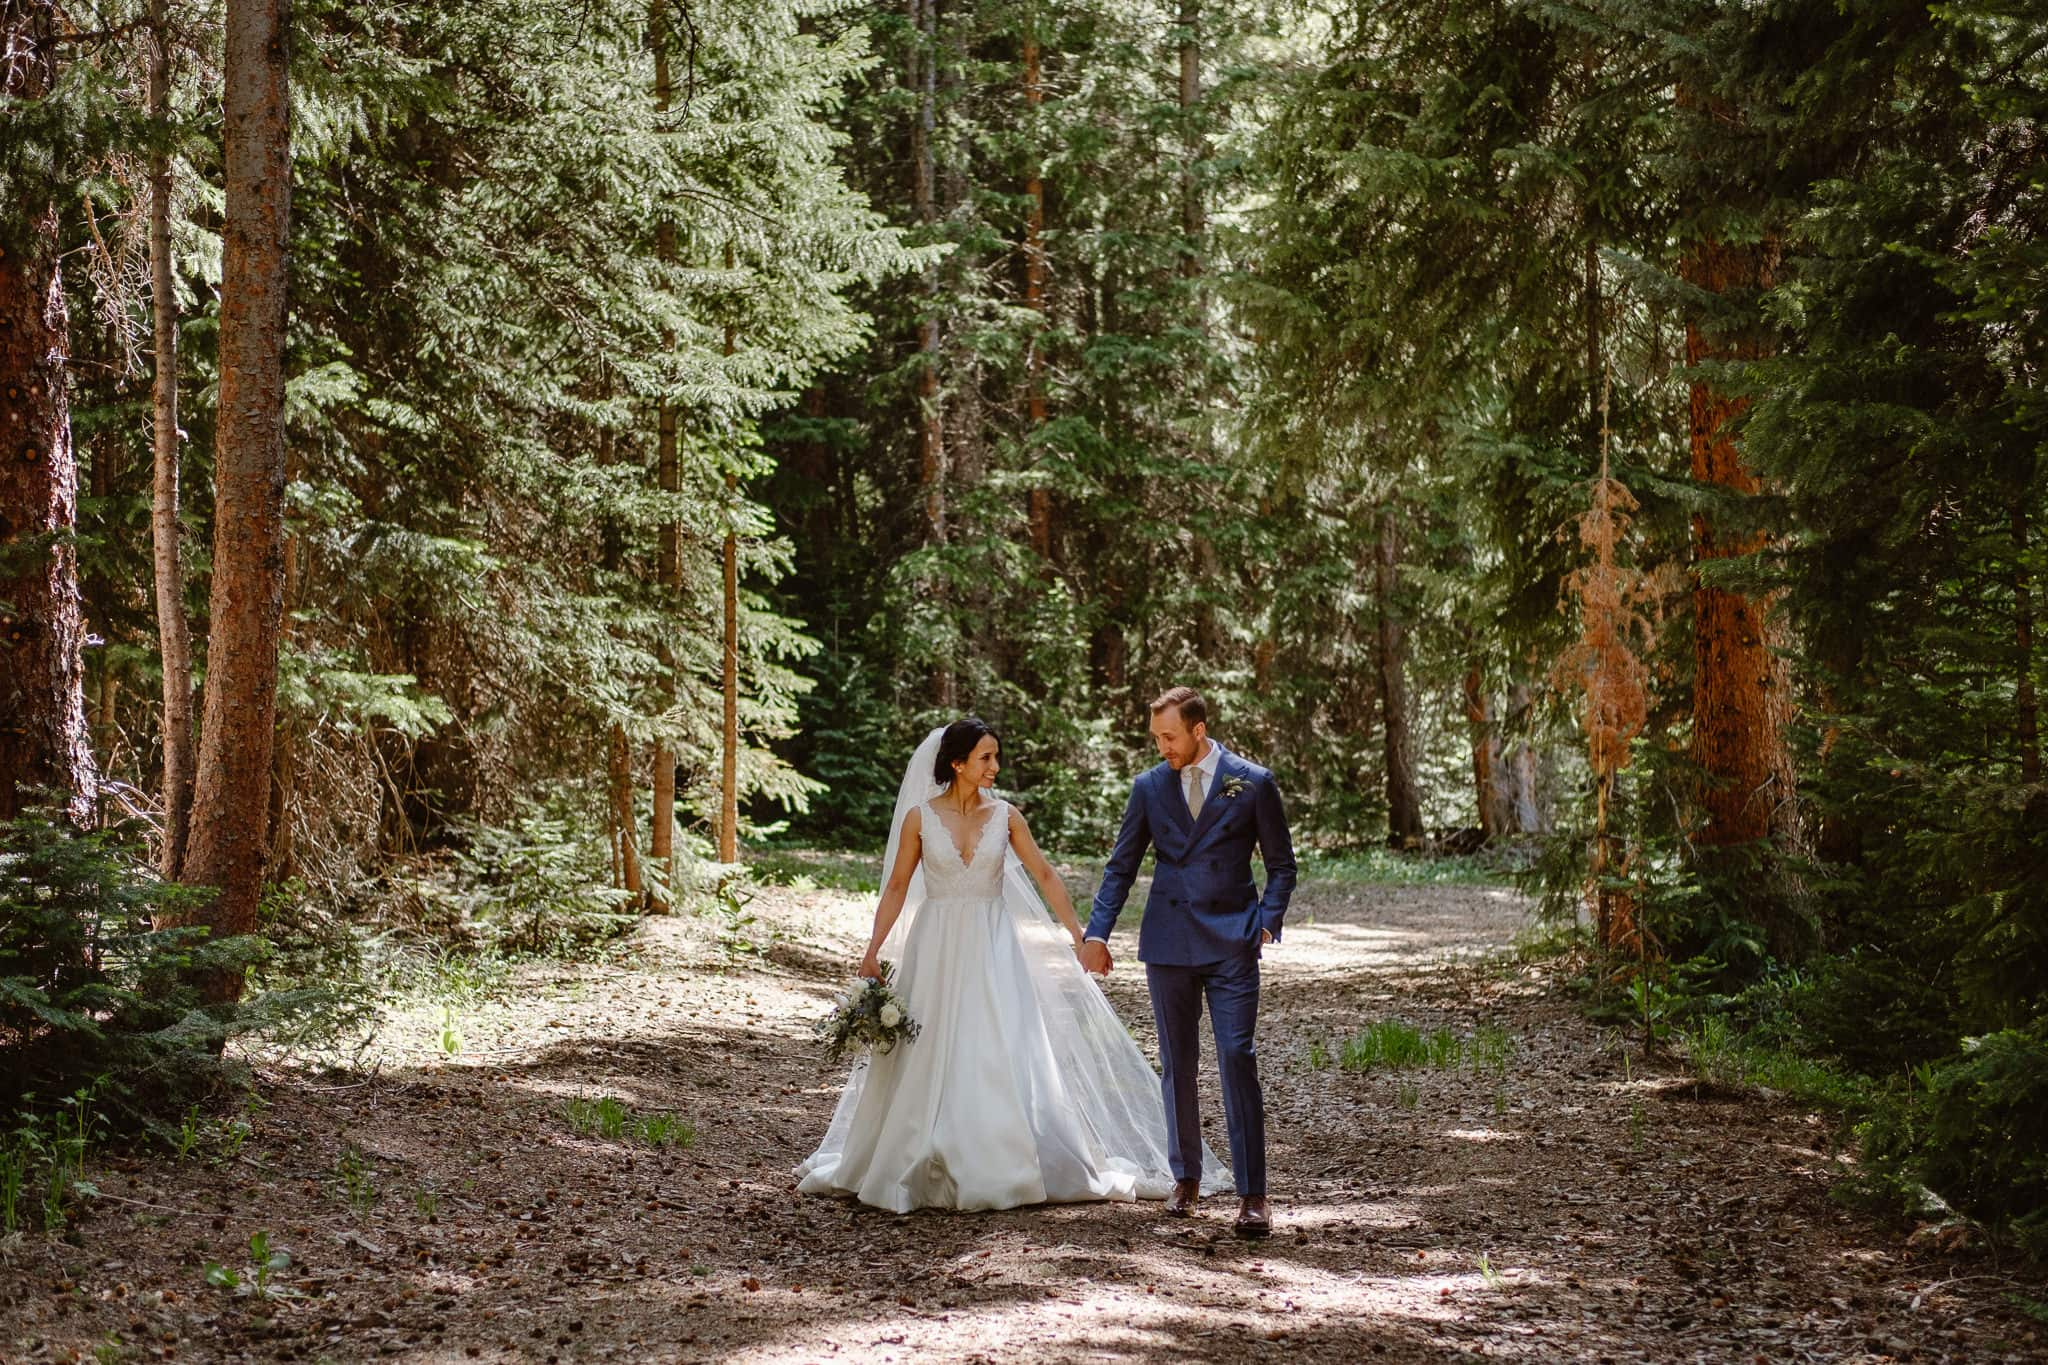 Bride and groom portraits walking in the woods at Breckenridge Nordic Center wedding, Summit County wedding photographer